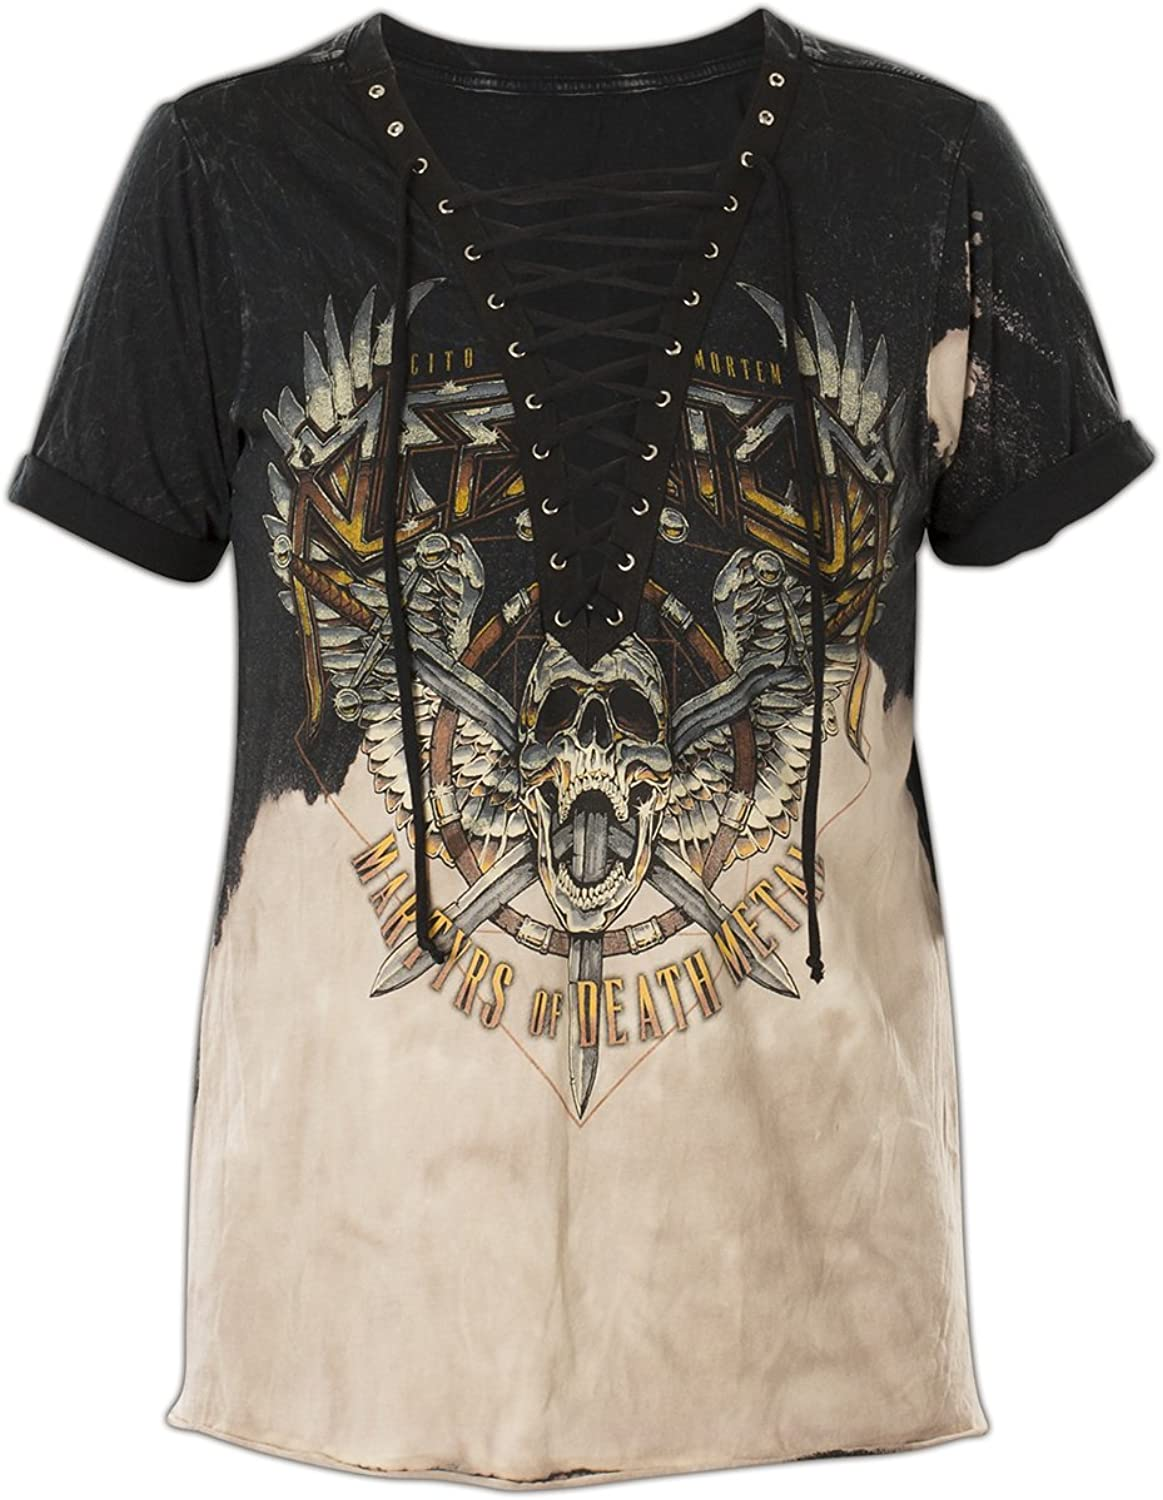 Affliction Setlist Short Sleeve Lace Up Fashion Graphic Top for Women